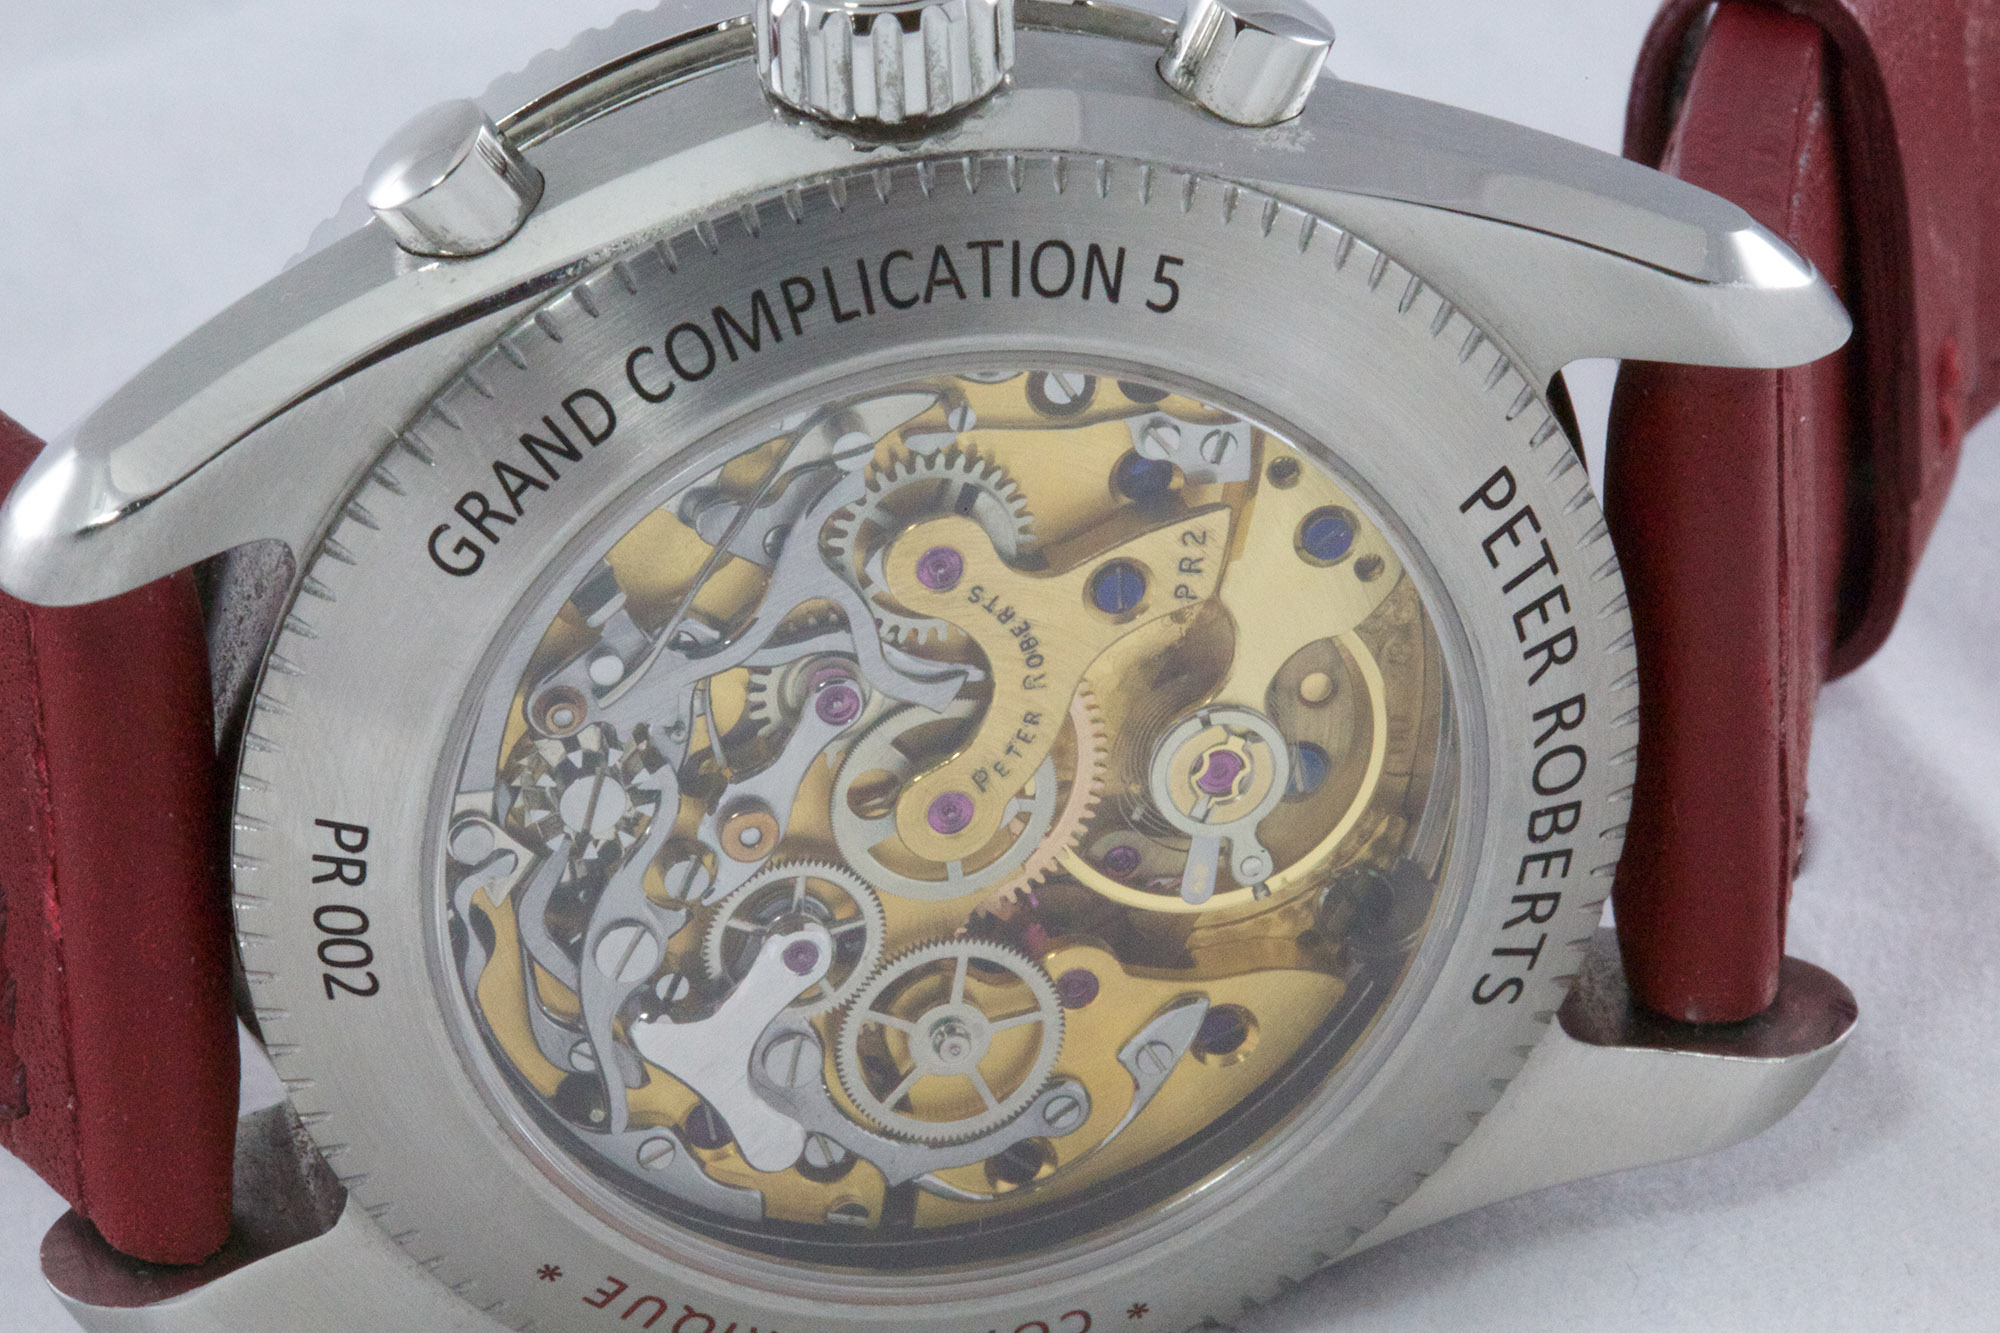 Peter Roberts Grand Complication 5 - Caseback